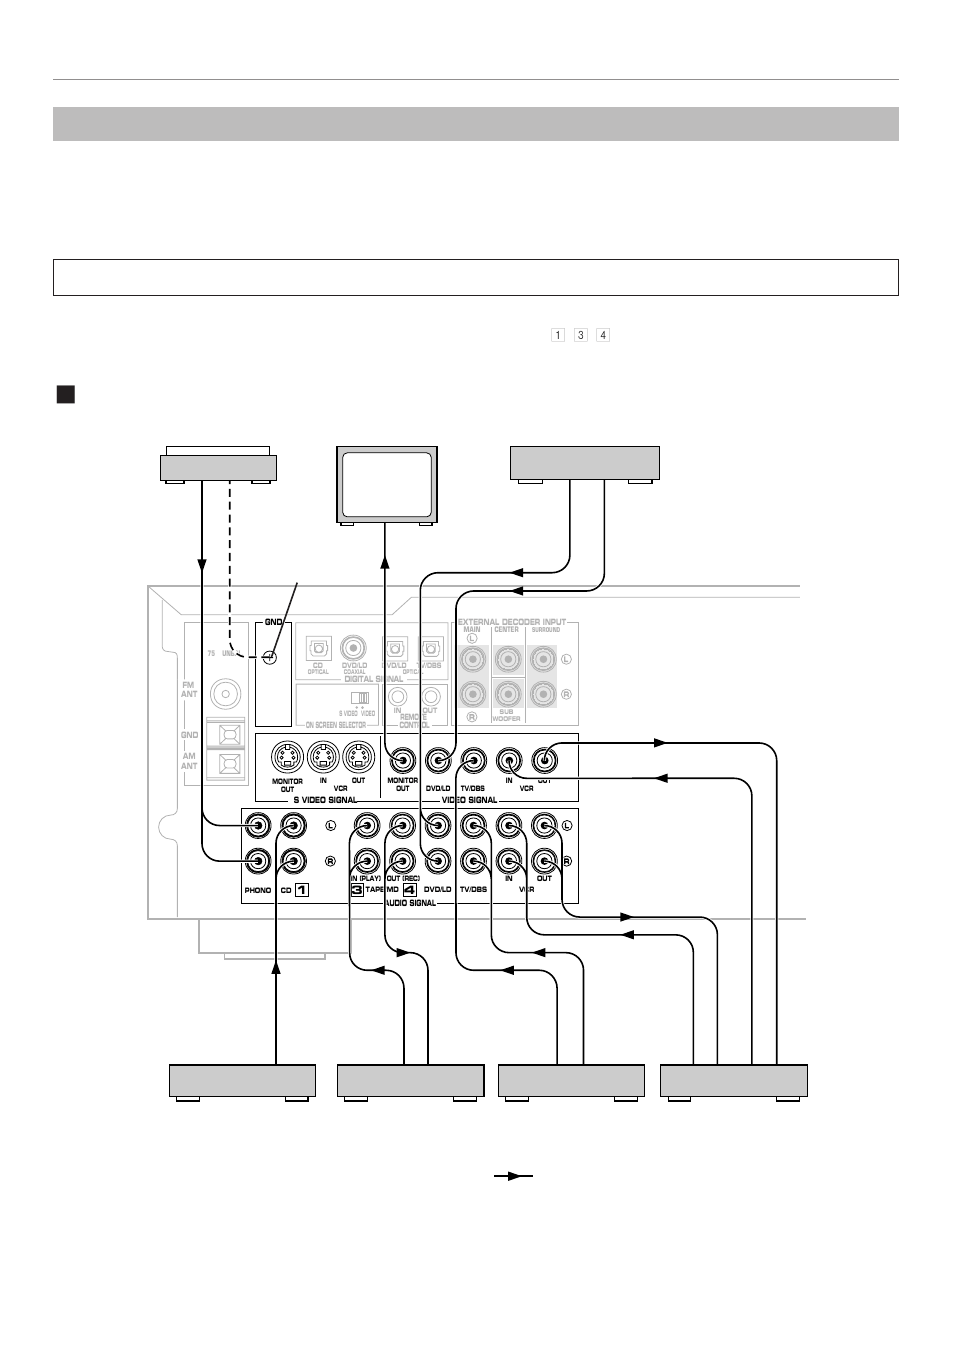 medium resolution of yamaha receiver rx v795 pdf page preview array connections audio video source equipment basic connections rh manualsdir com